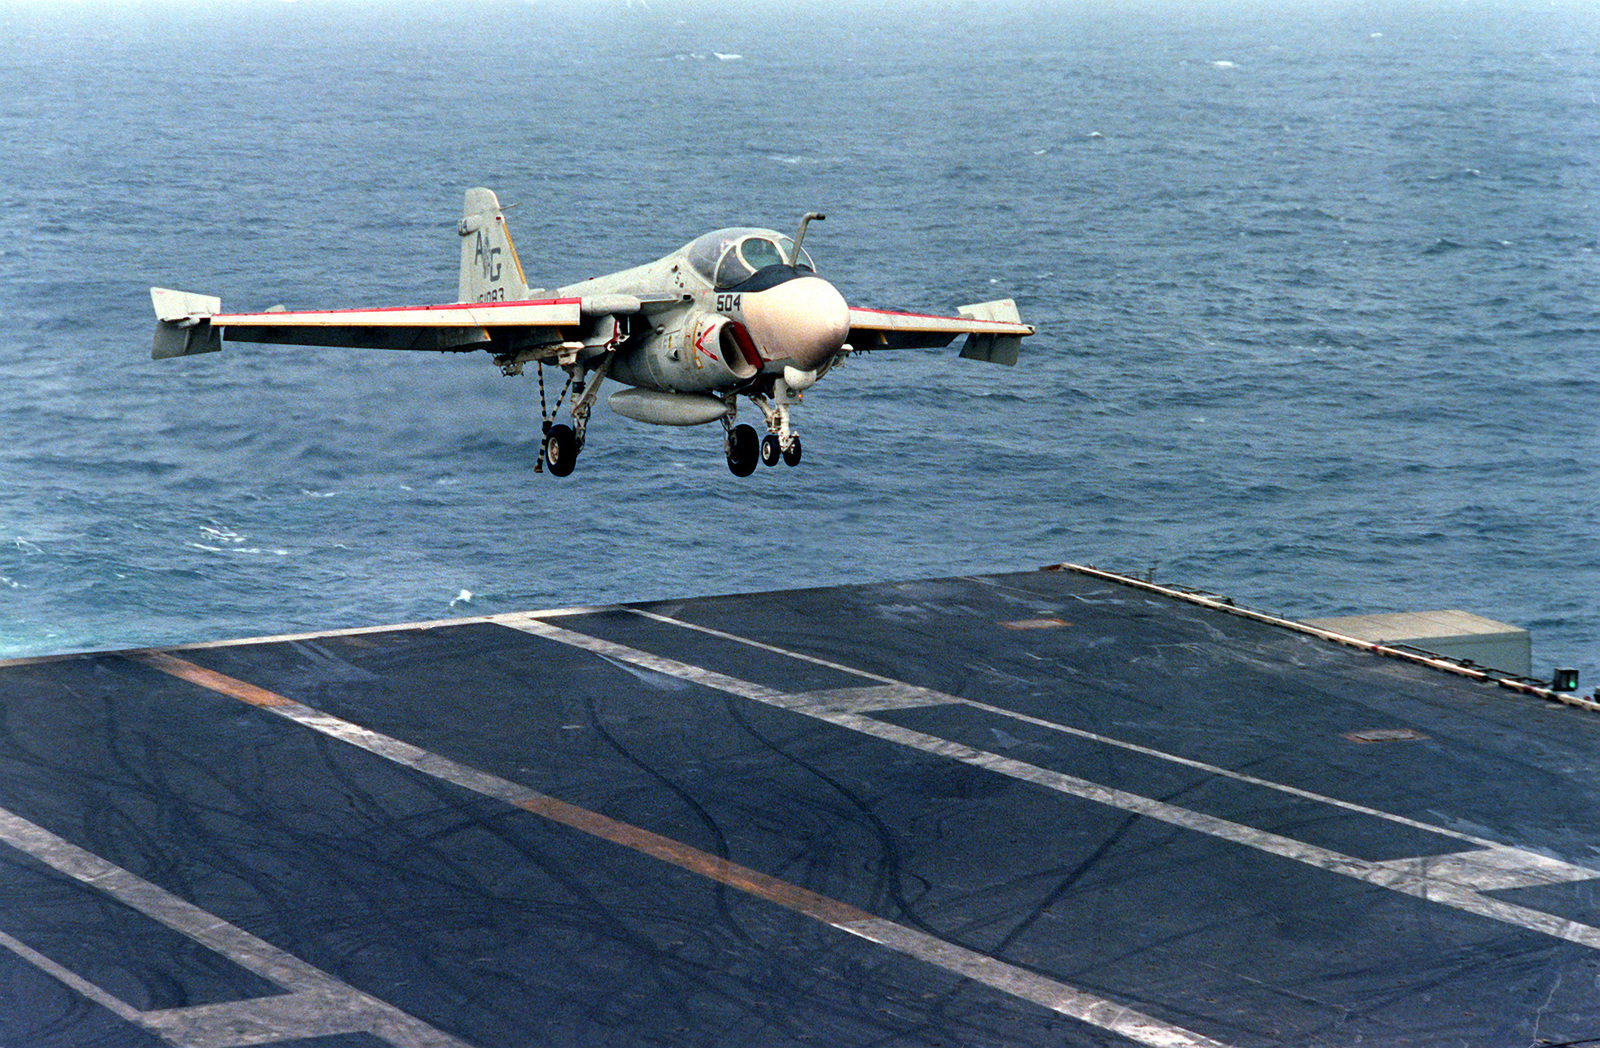 An A-6E Intruder aircraft prepares to touch down on the flight deck during an arrested landing aboard the nuclear-powered aircraft carrier USS DWIGHT D. EISENHOWER (CVN-69). The A-6E is assigned to Medium Attack Squadron 65 (VA-65)